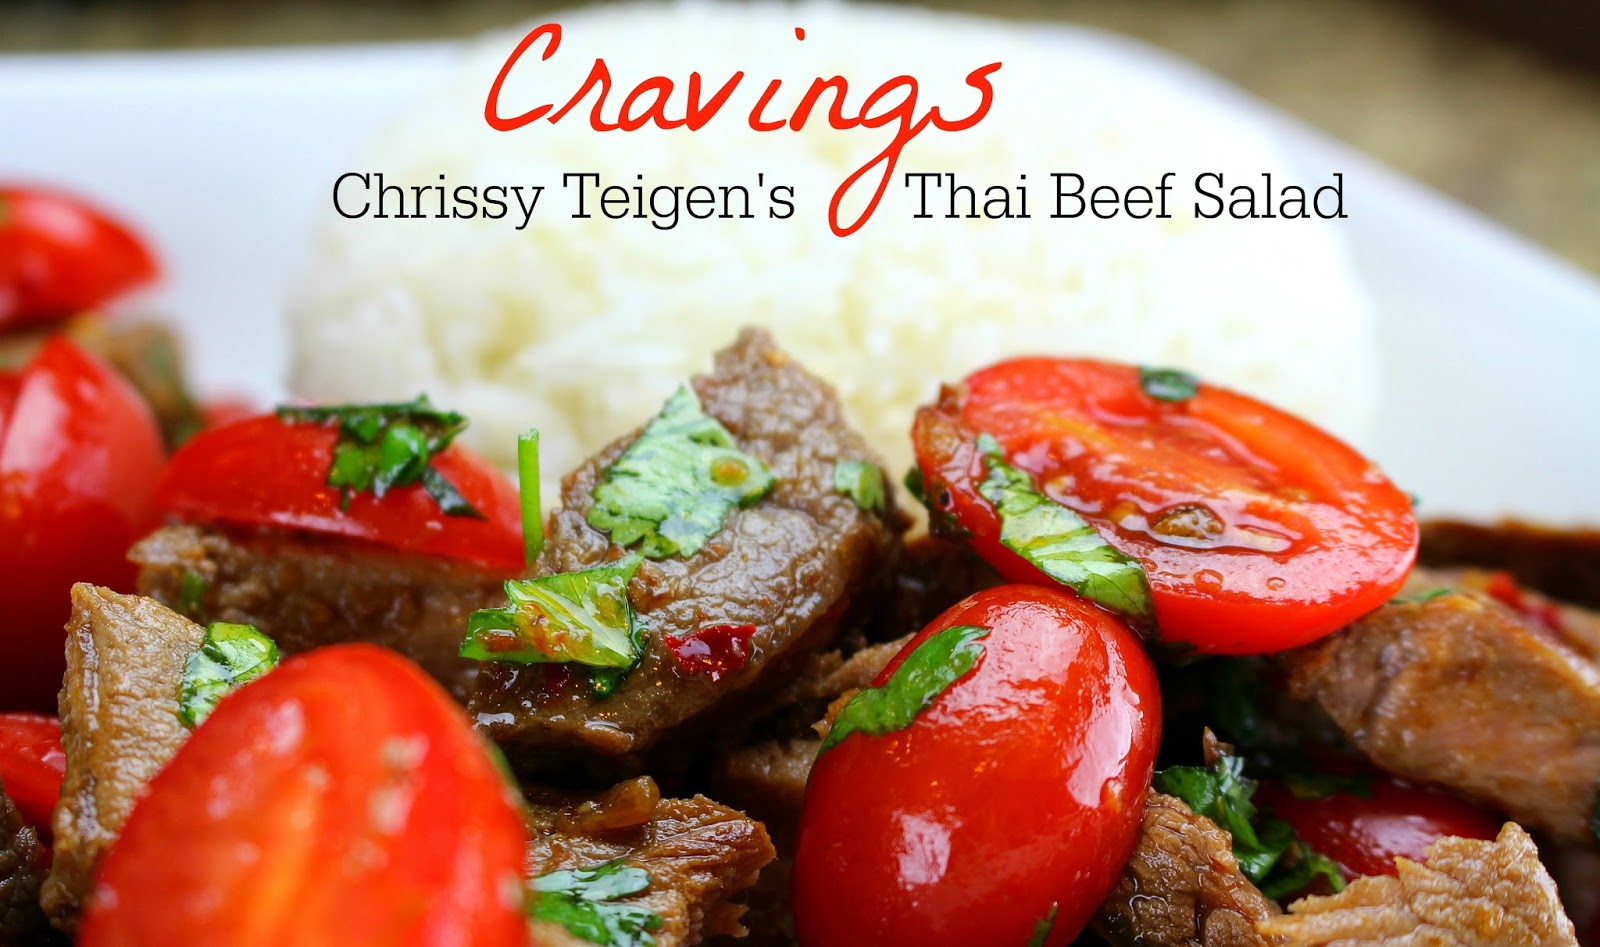 Cravings chrissy teigens thai beef salad when chrissy teigen released her new book cravings i went to three different stores to get a copy target lied to me twice when they said they would hold forumfinder Images